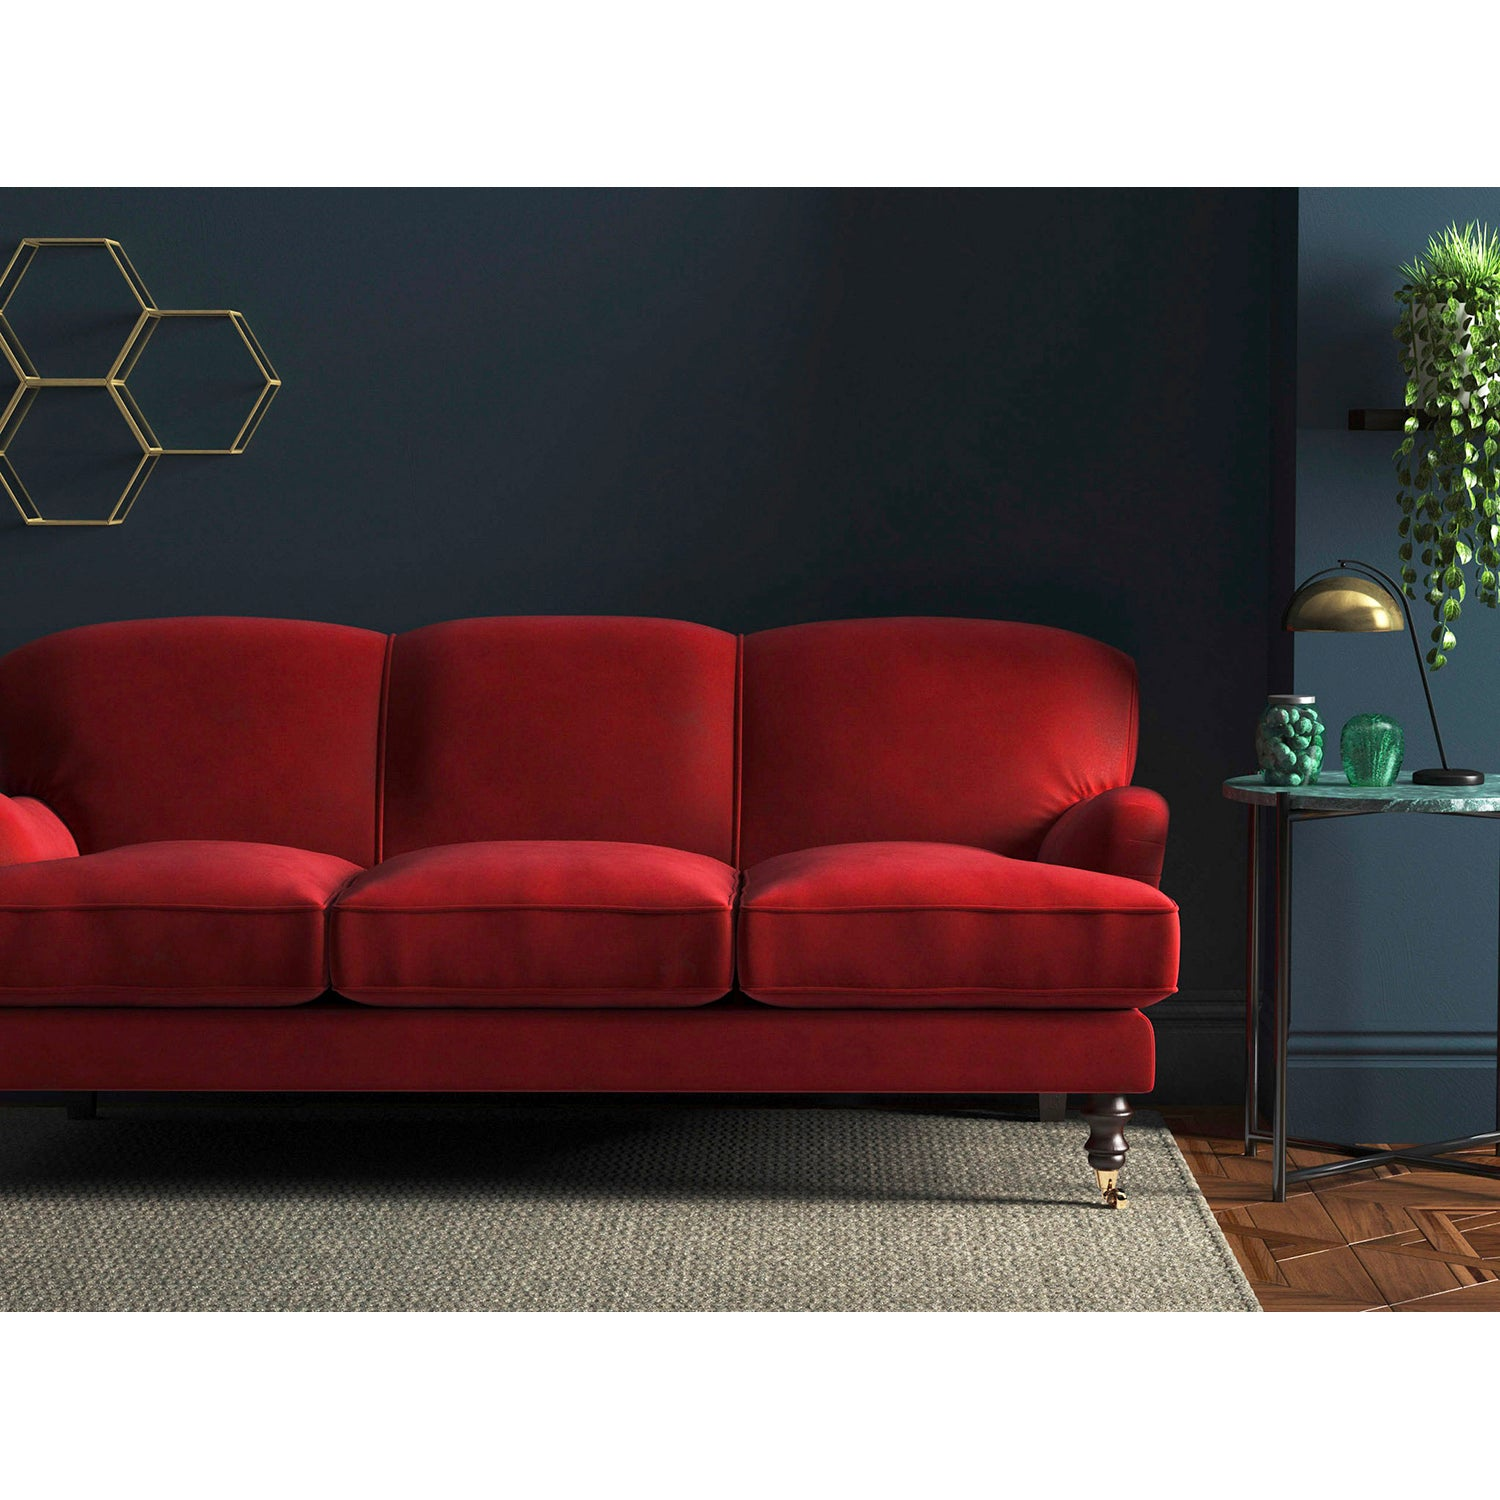 Sofa in a pillarbox red velvet upholstery fabric with a stain resist finish